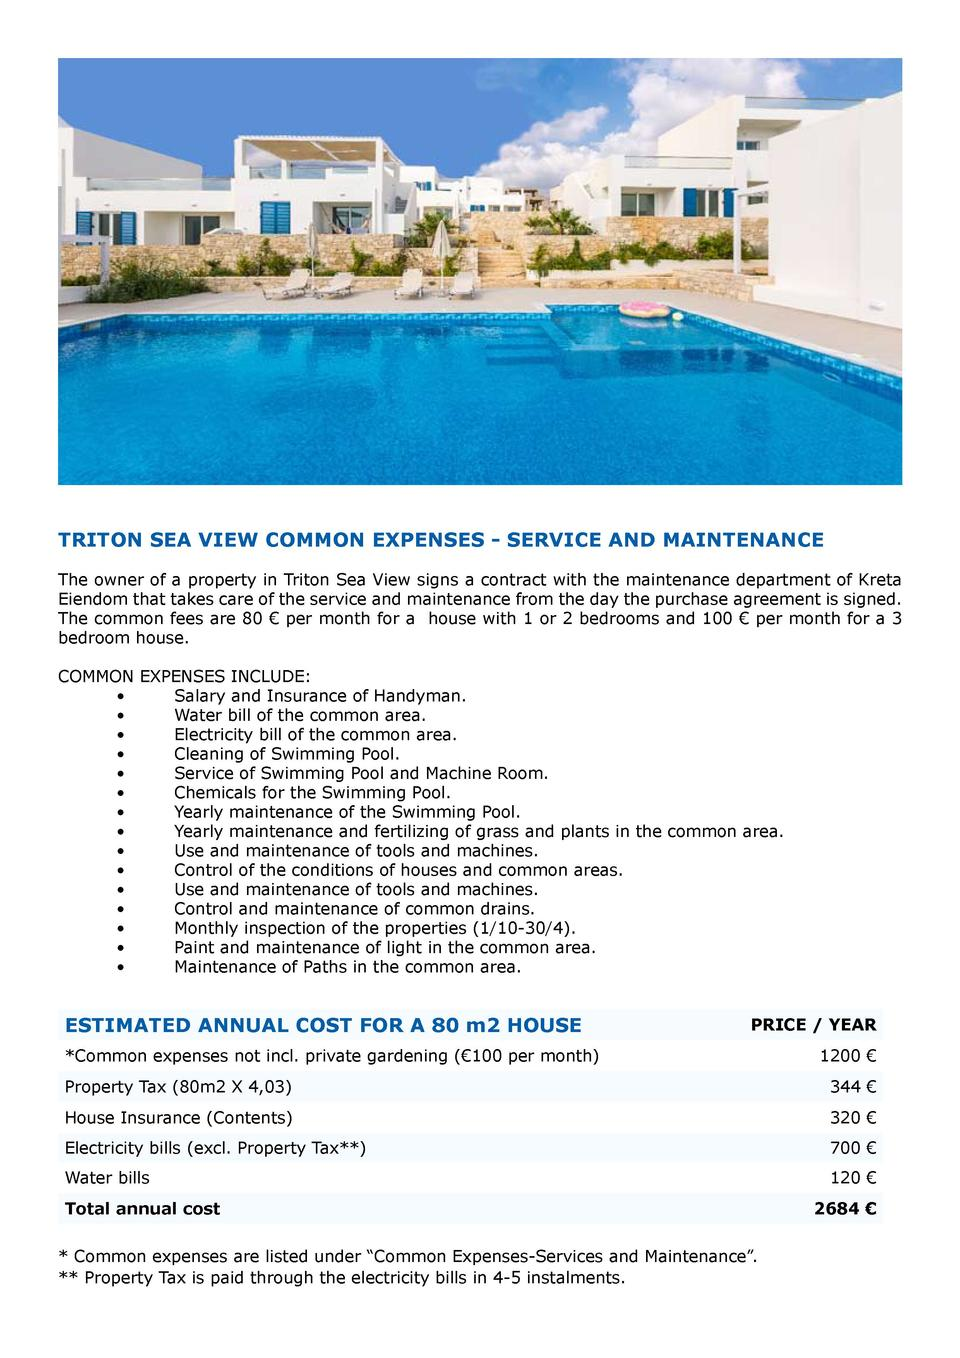 TRITON SEA VIEW COMMON EXPENSES - SERVICE AND MAINTENANCE The owner of a property in Triton Sea View signs a contract with...